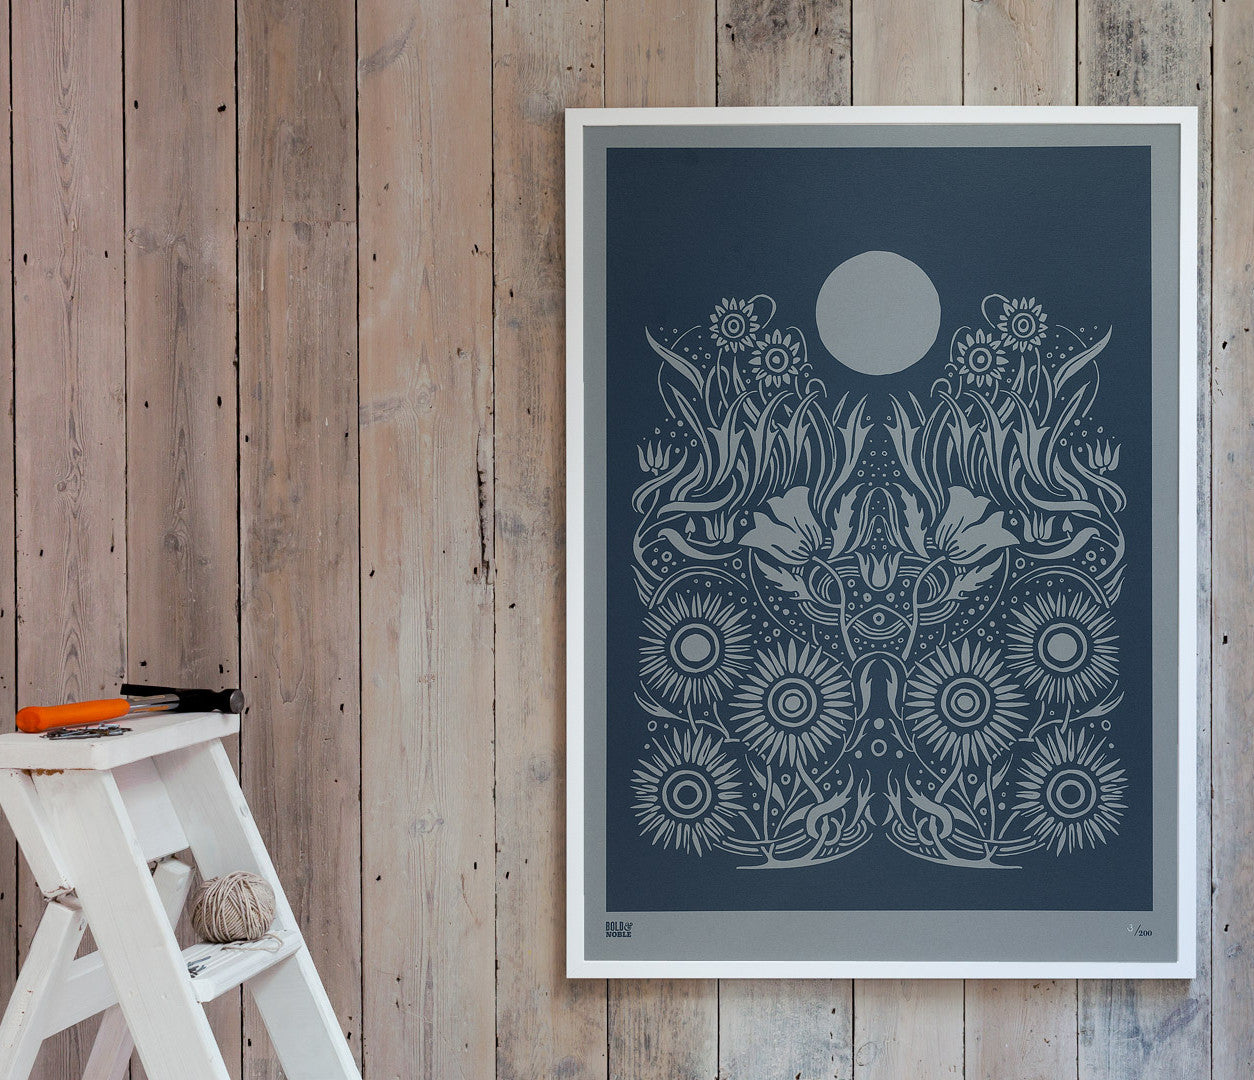 'Moonlight' Limited Edition Art Print on Grey Card